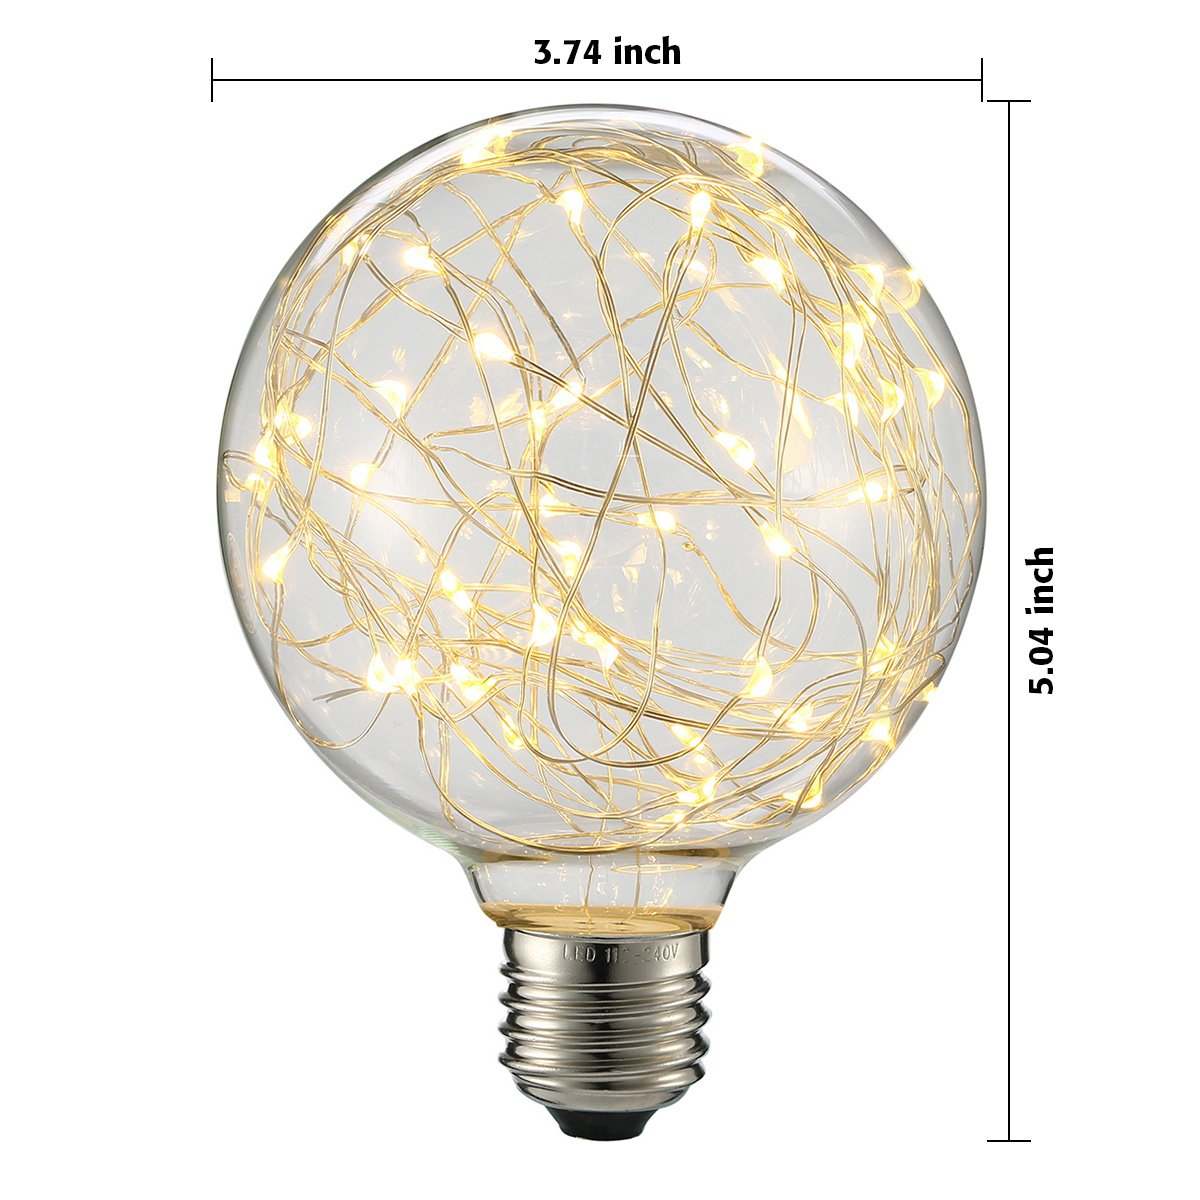 KINGSO G95 Vintage Edison Bulb,E27 Base 3W 300LM Antique Filament Globe Spiral Design LED Lights for Christmas Home Party Cafes Bars Decoration Warm White 5